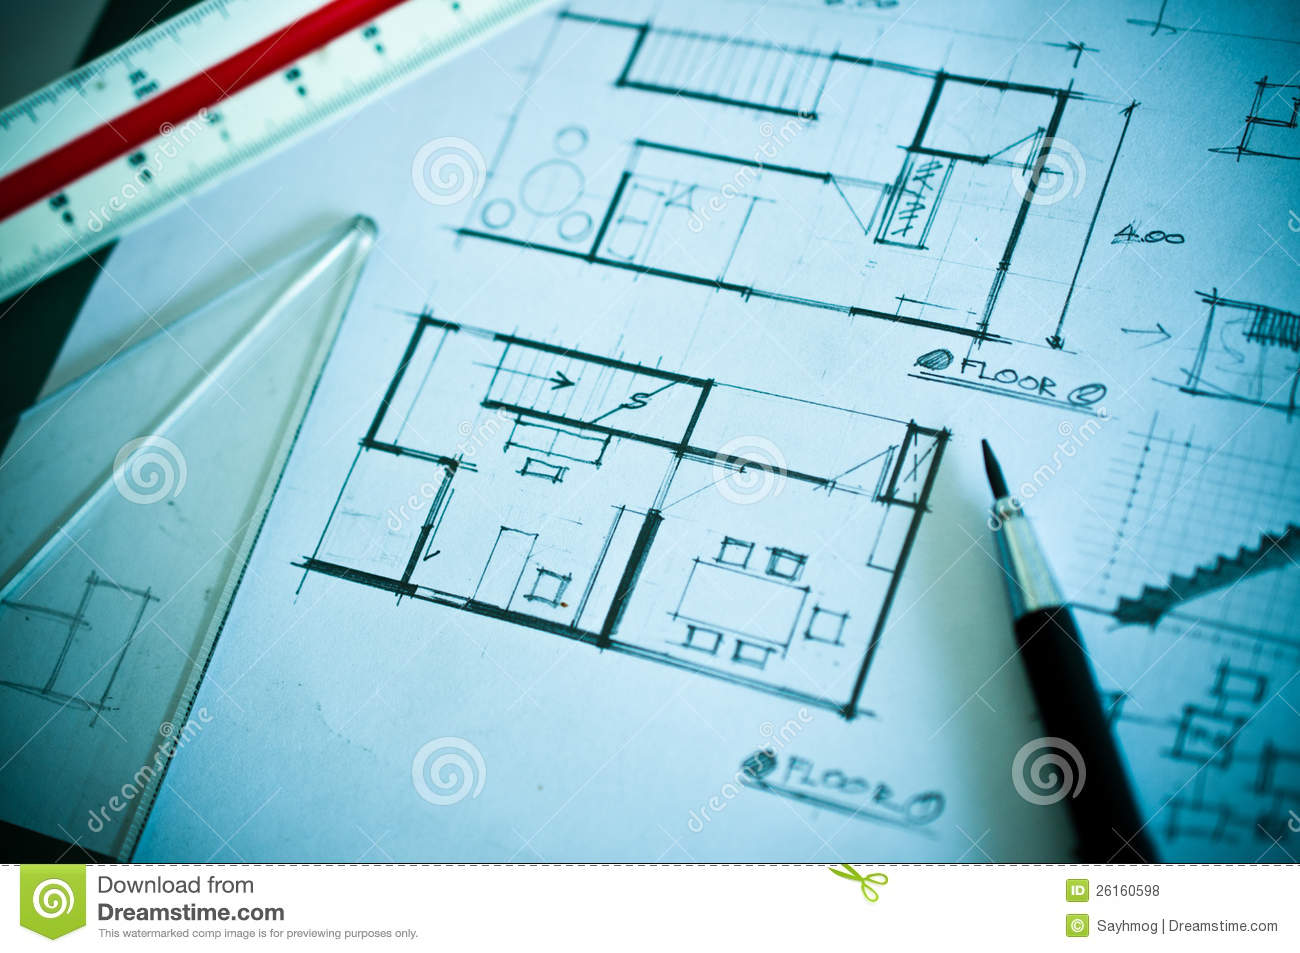 Work of interior design concept royalty free stock photos for Interior design concept